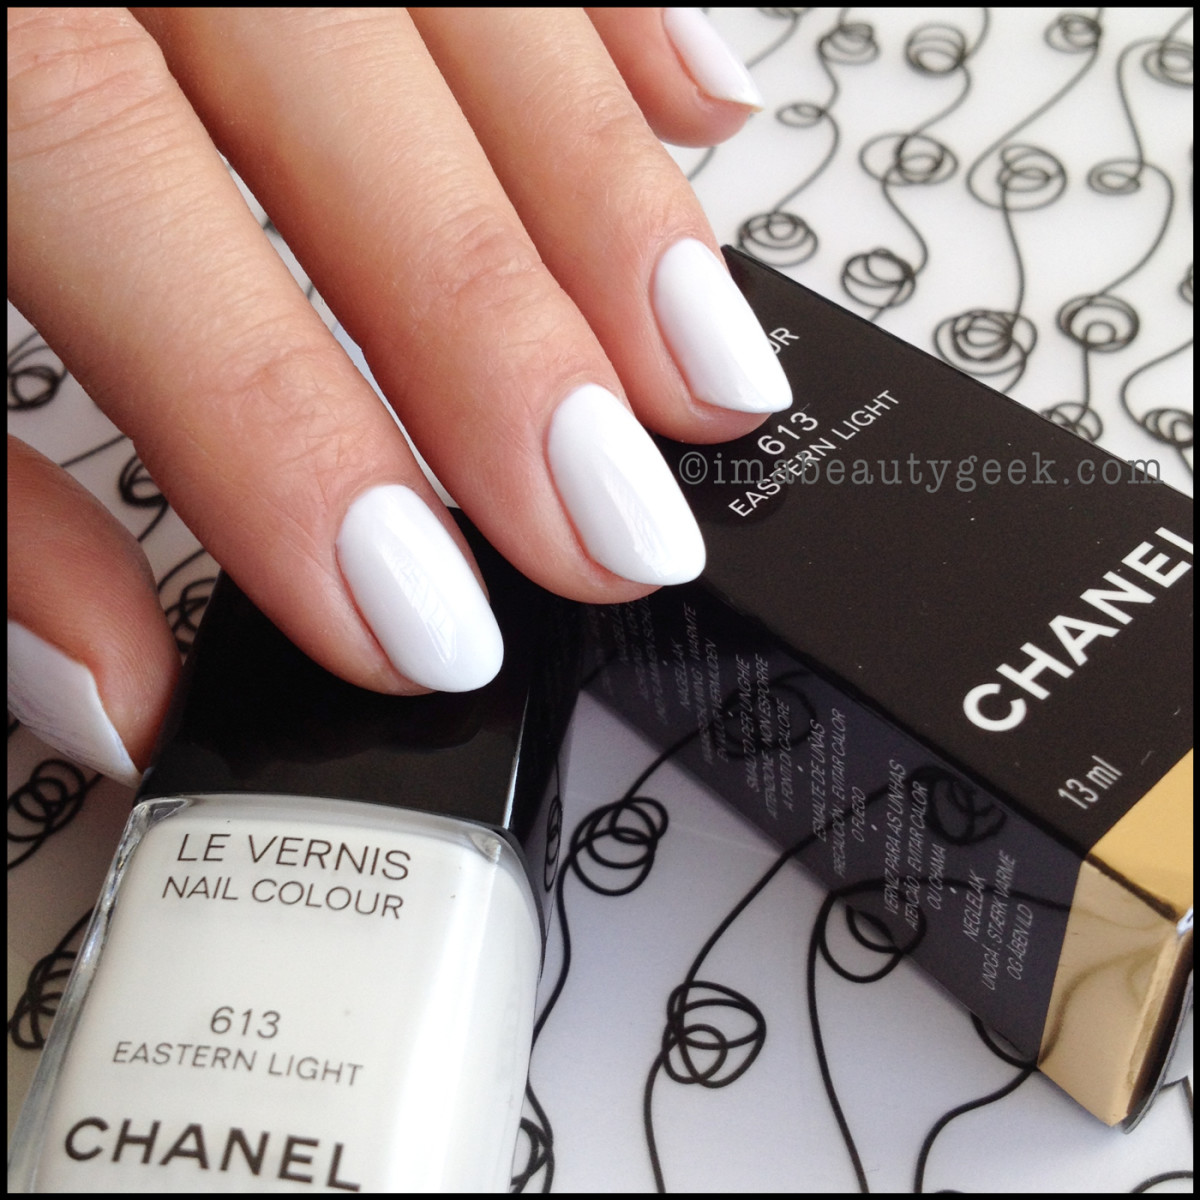 Chanel Summer 2014_Chanel Eastern Light 613 Le Vernis